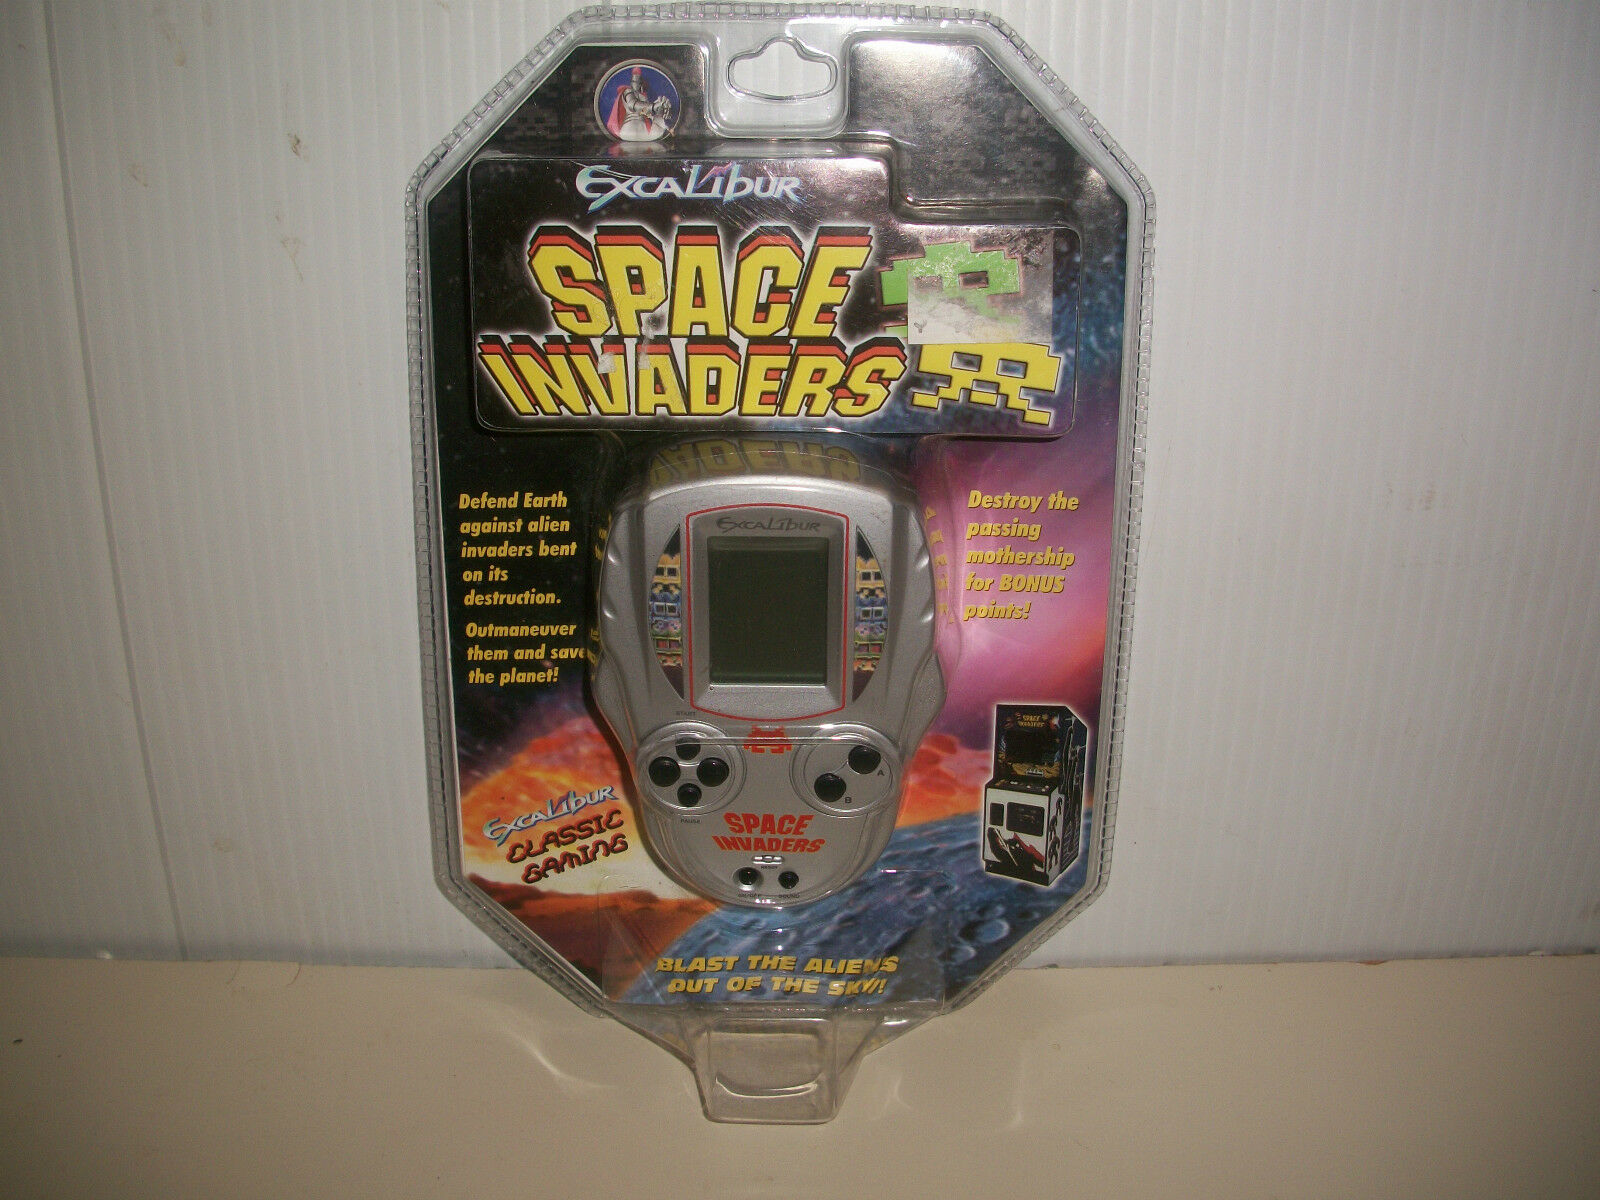 VINTAGE HANDHELD GAME EXCALIBUR SPACE INVADERS 1978 COLLECTIBLE ARCADE GAME NOC